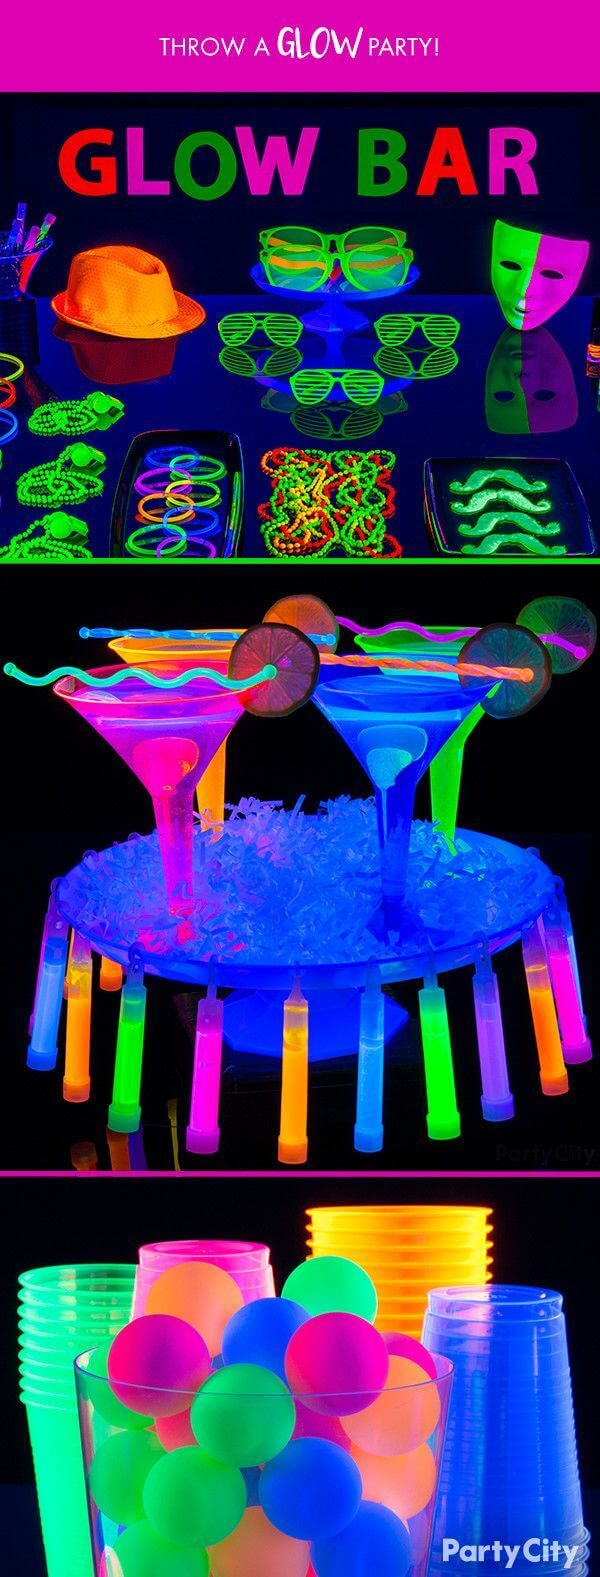 Glam up Your Bar with Glowing Cups and Glasses